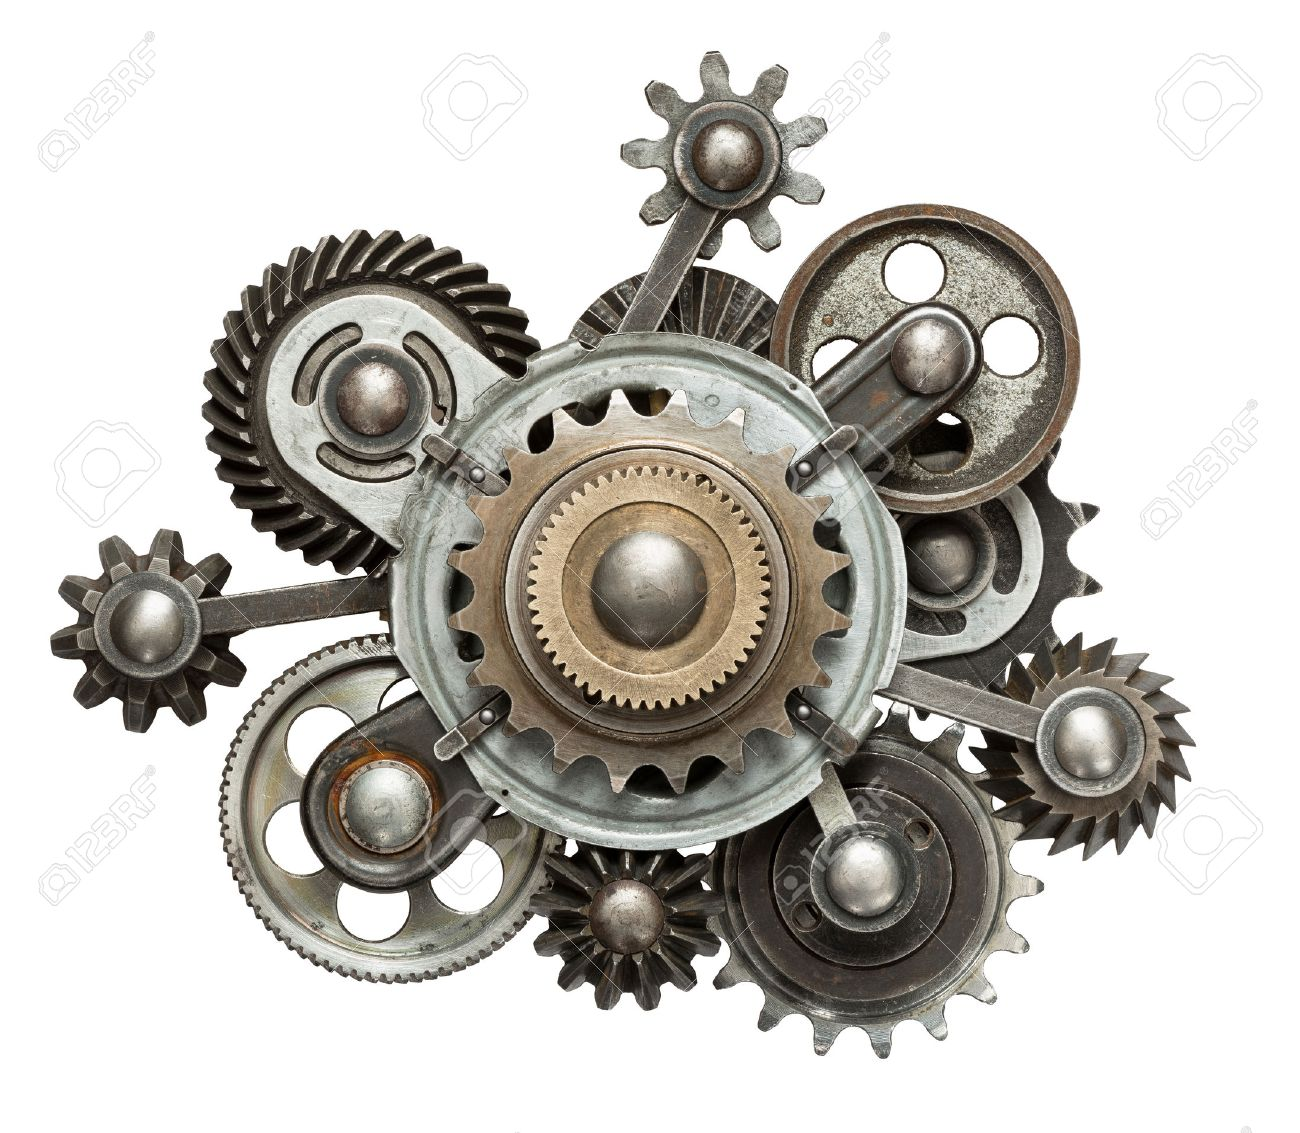 Stylized mechanical collage. Made of metal gears. Stock Photo - 30409661